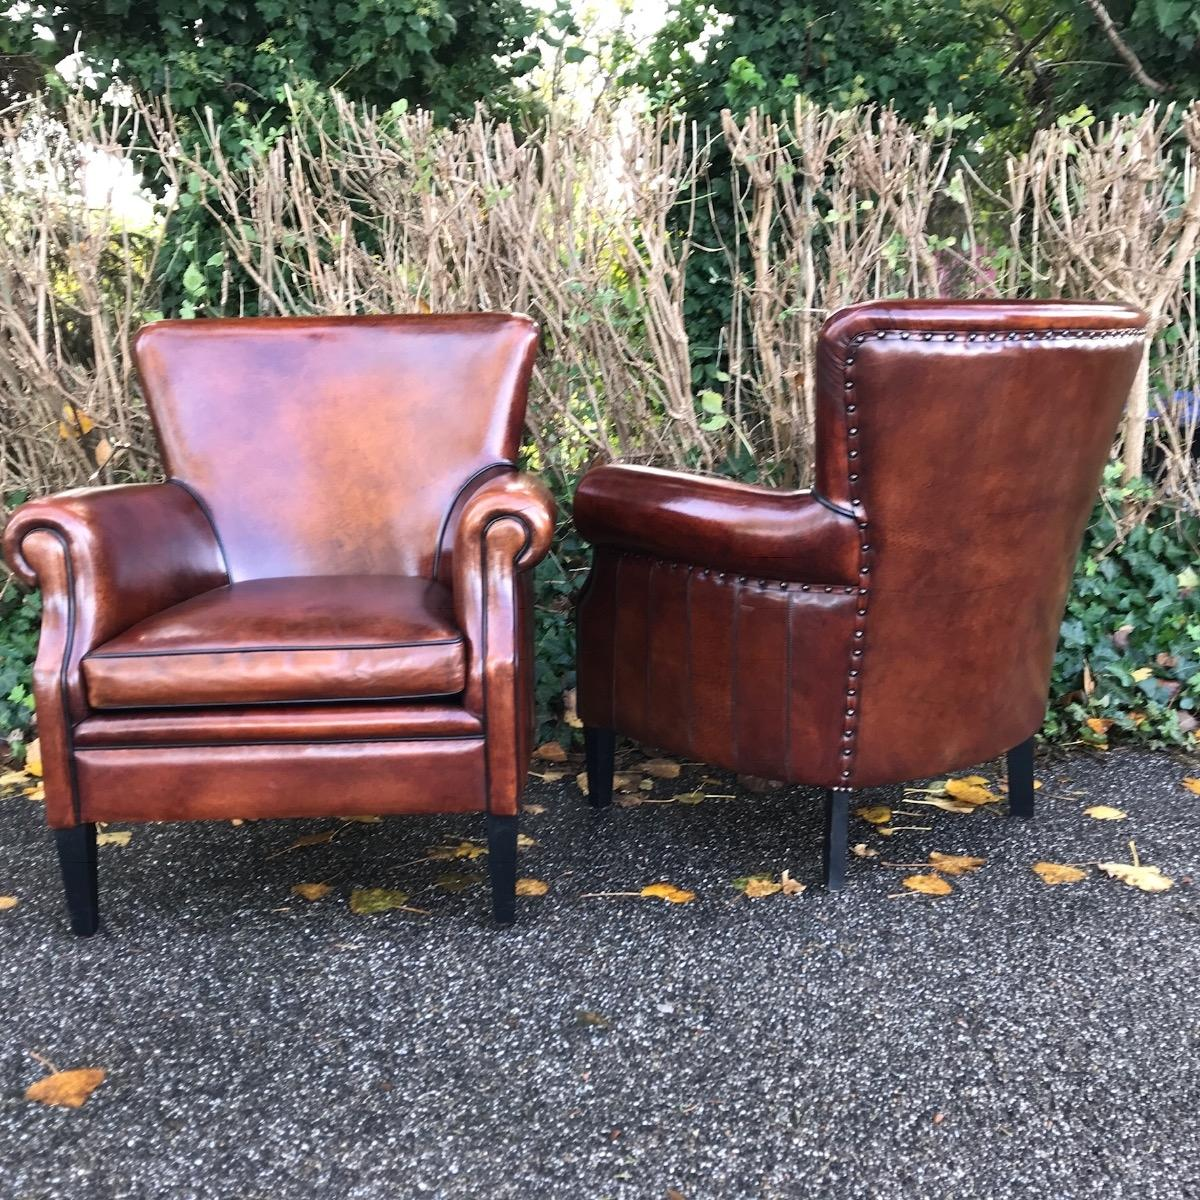 Schapenleren Fauteuil Nieuw.Recent Added Items European Antiques Decorative